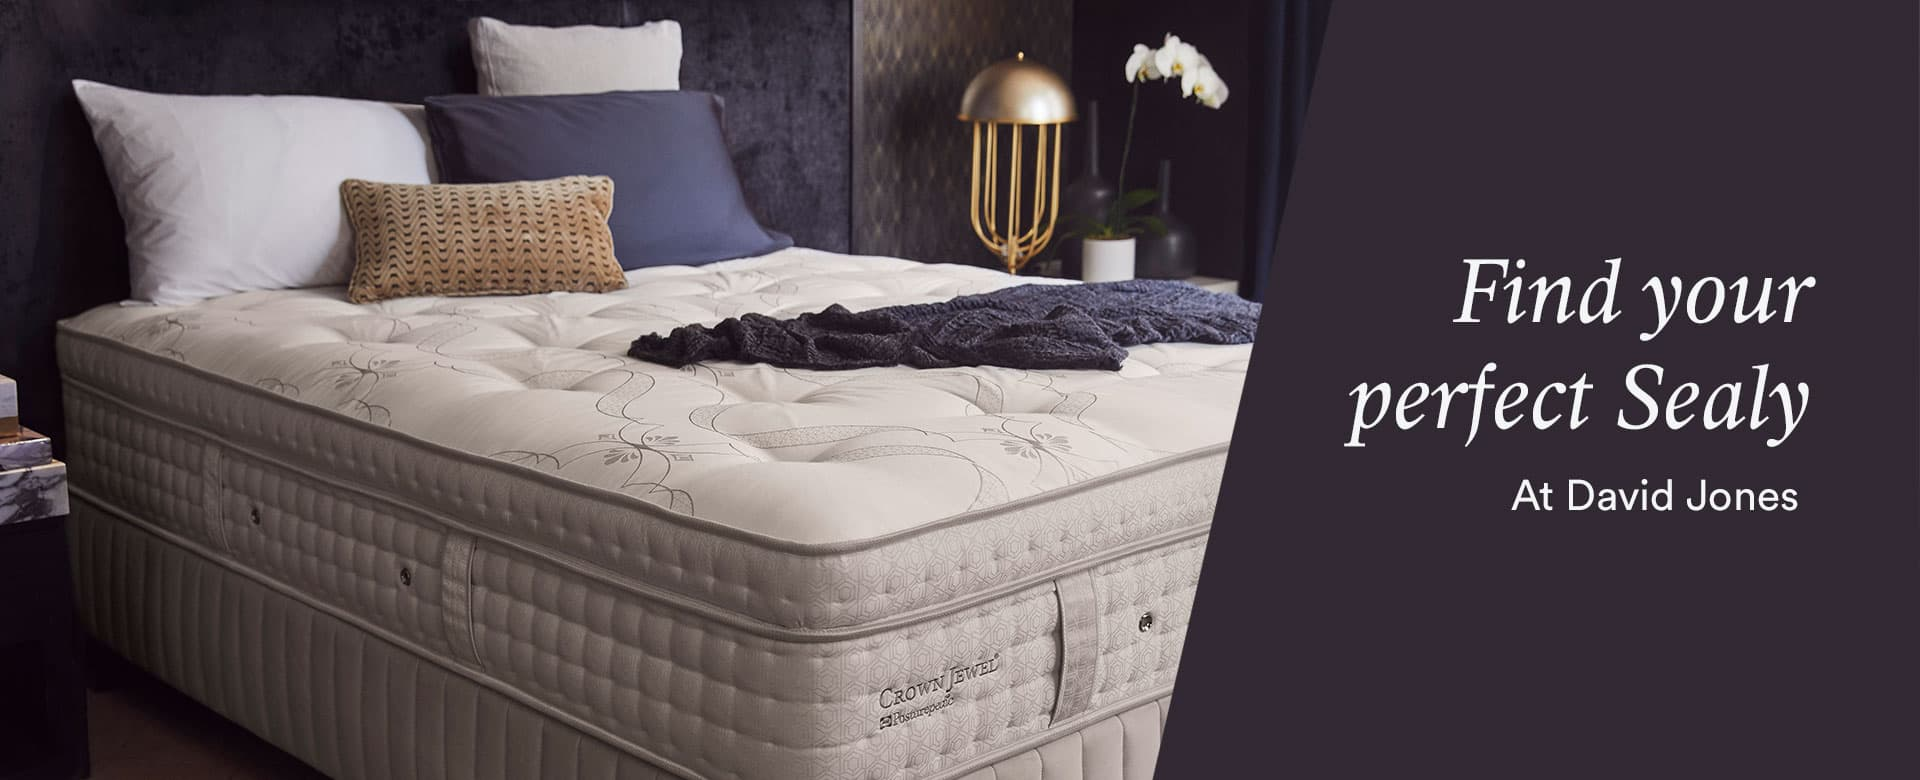 Single Mattress Brisbane Sealy Buy Sealy Beds Mattresses Online David Jones